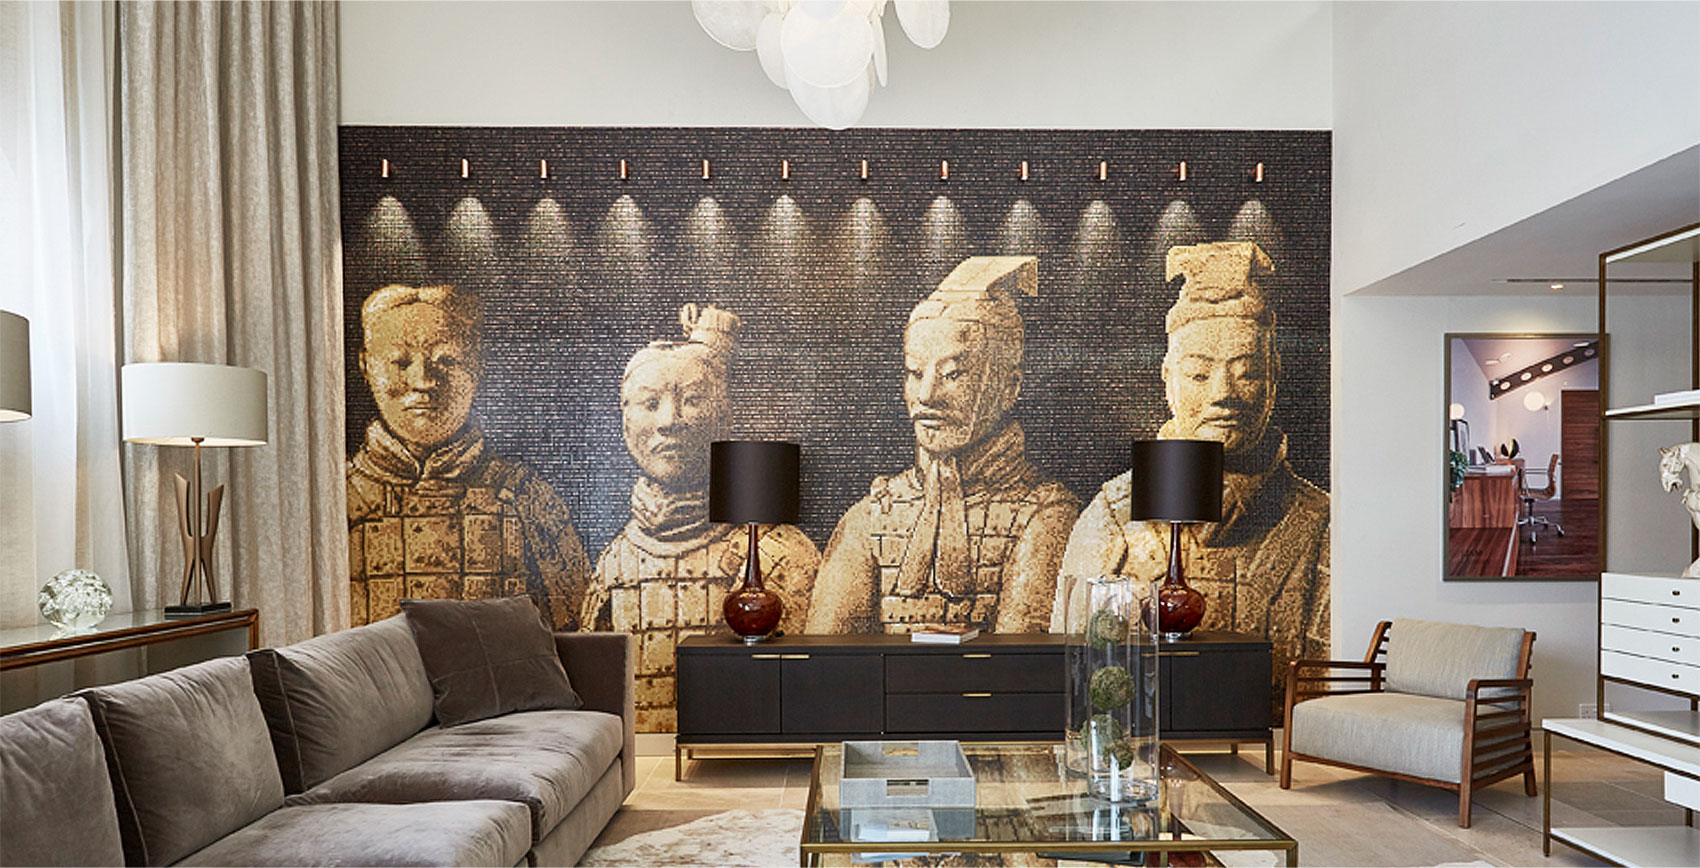 Jam Interiors showroom Bisazza mosaico Chinese warriors